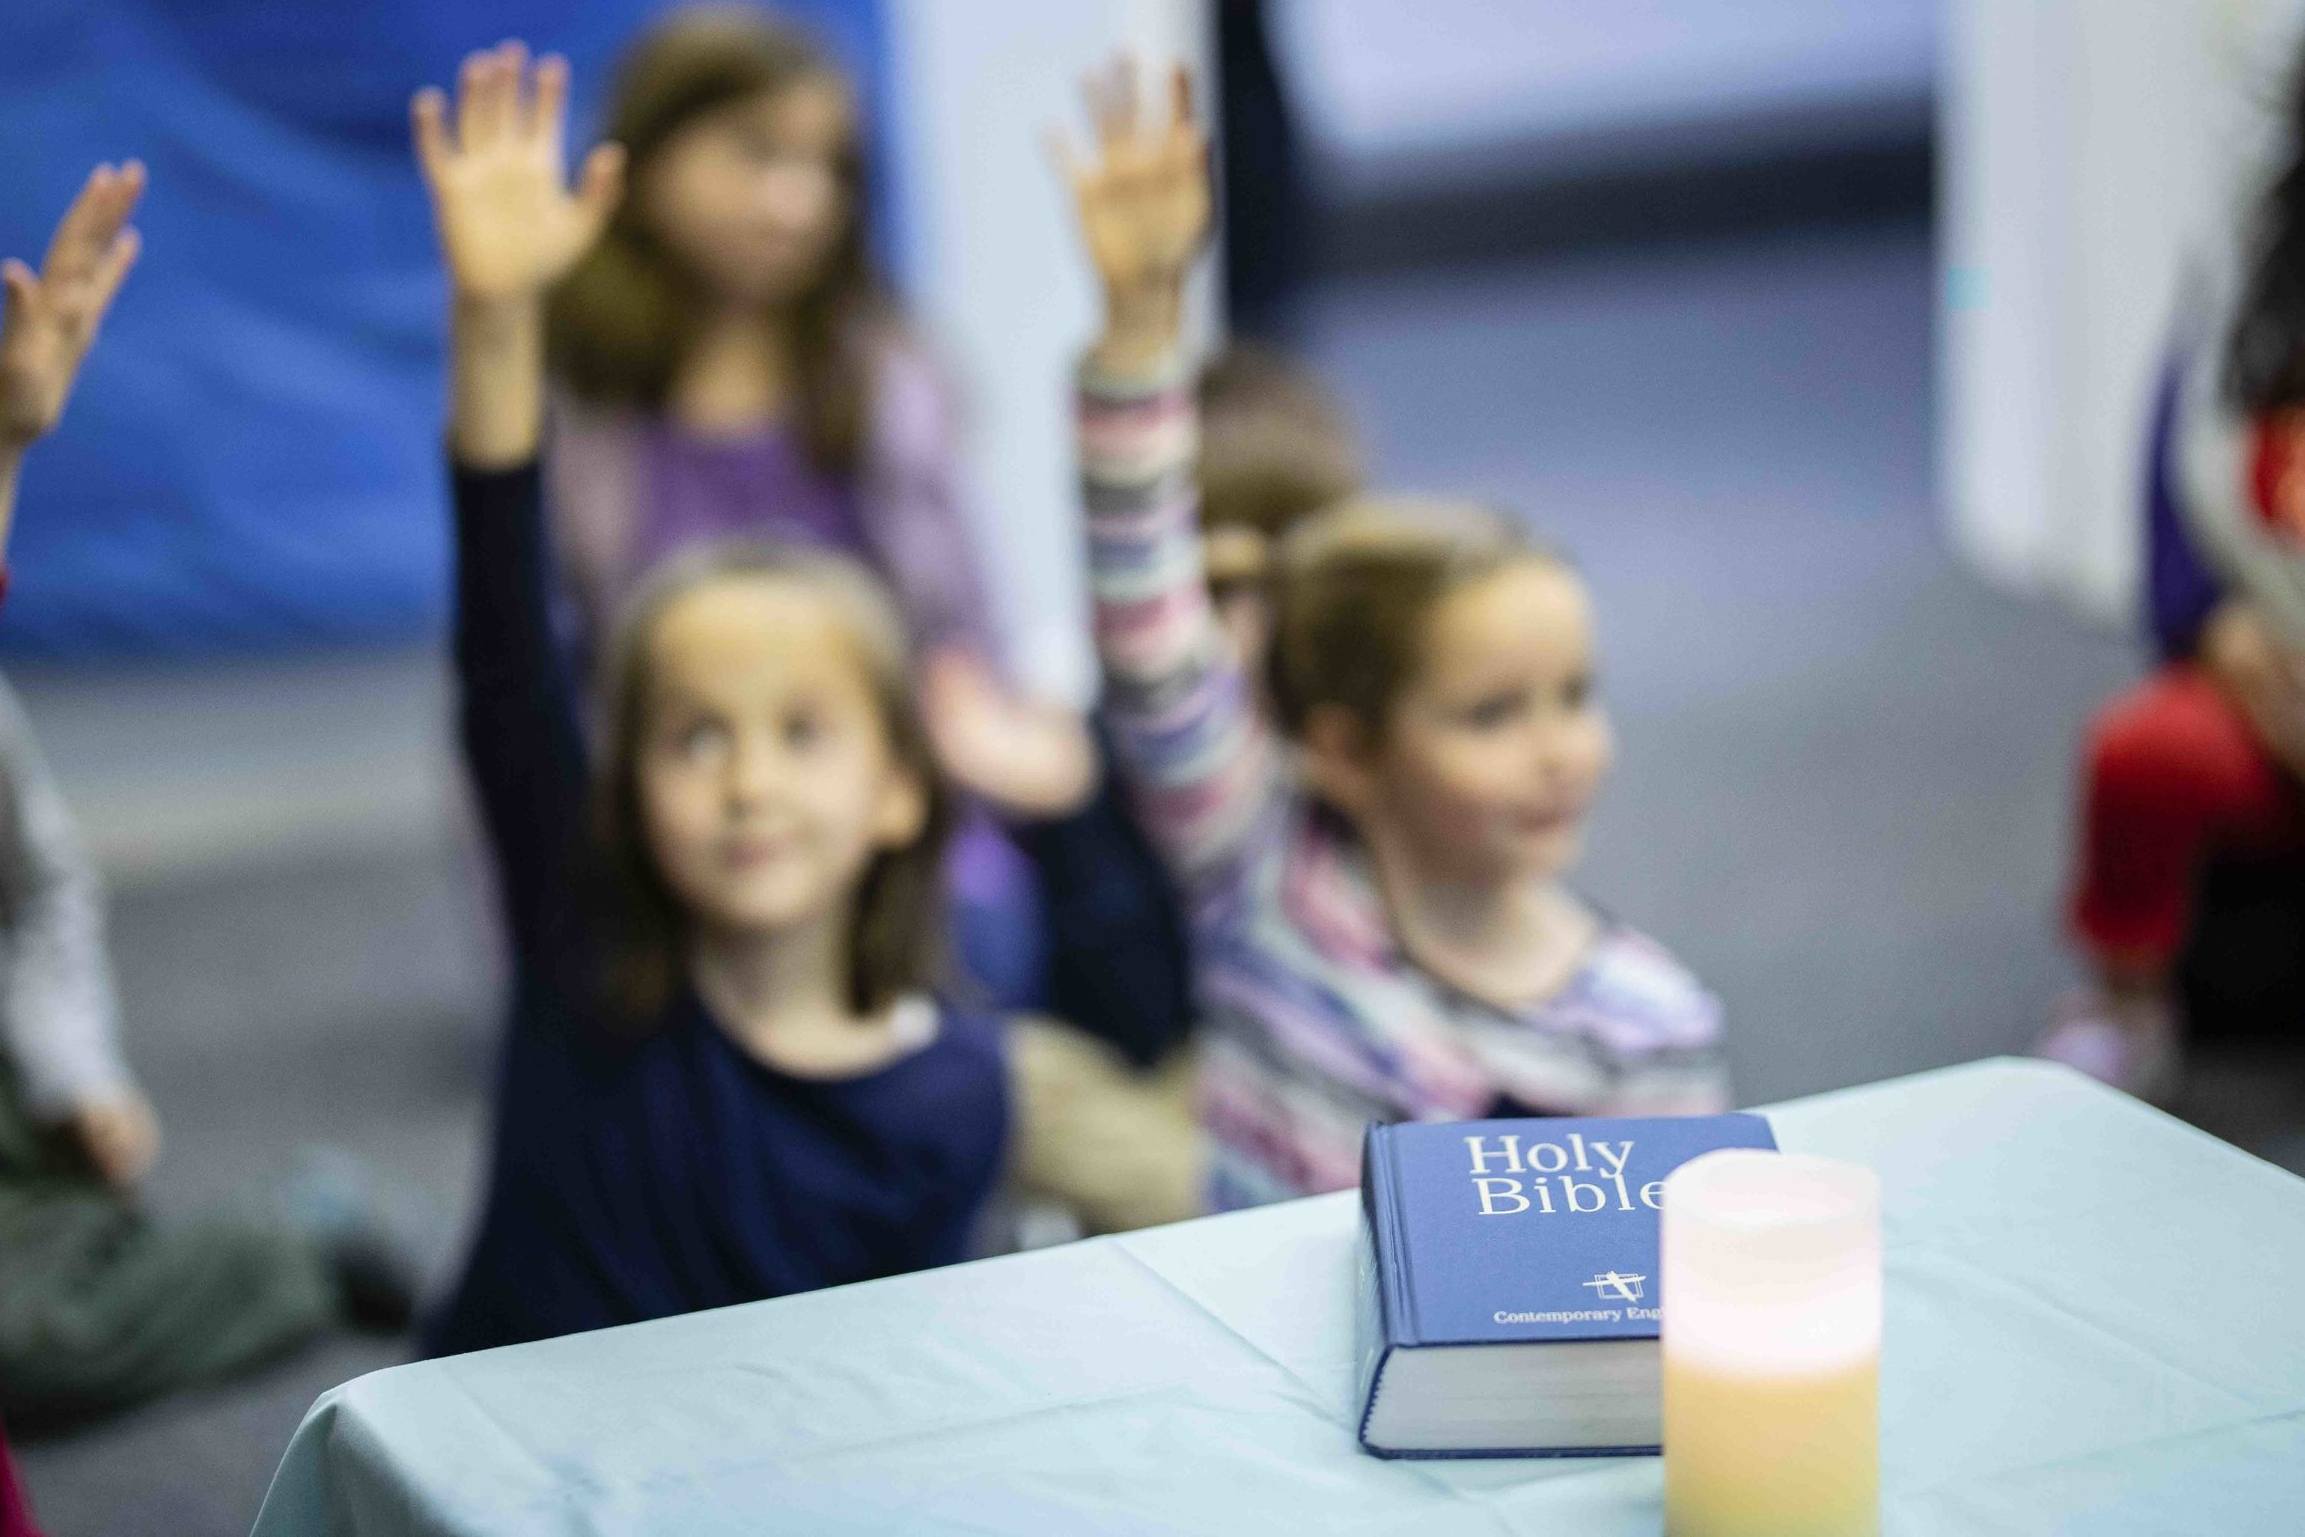 Children participating in Sunday School